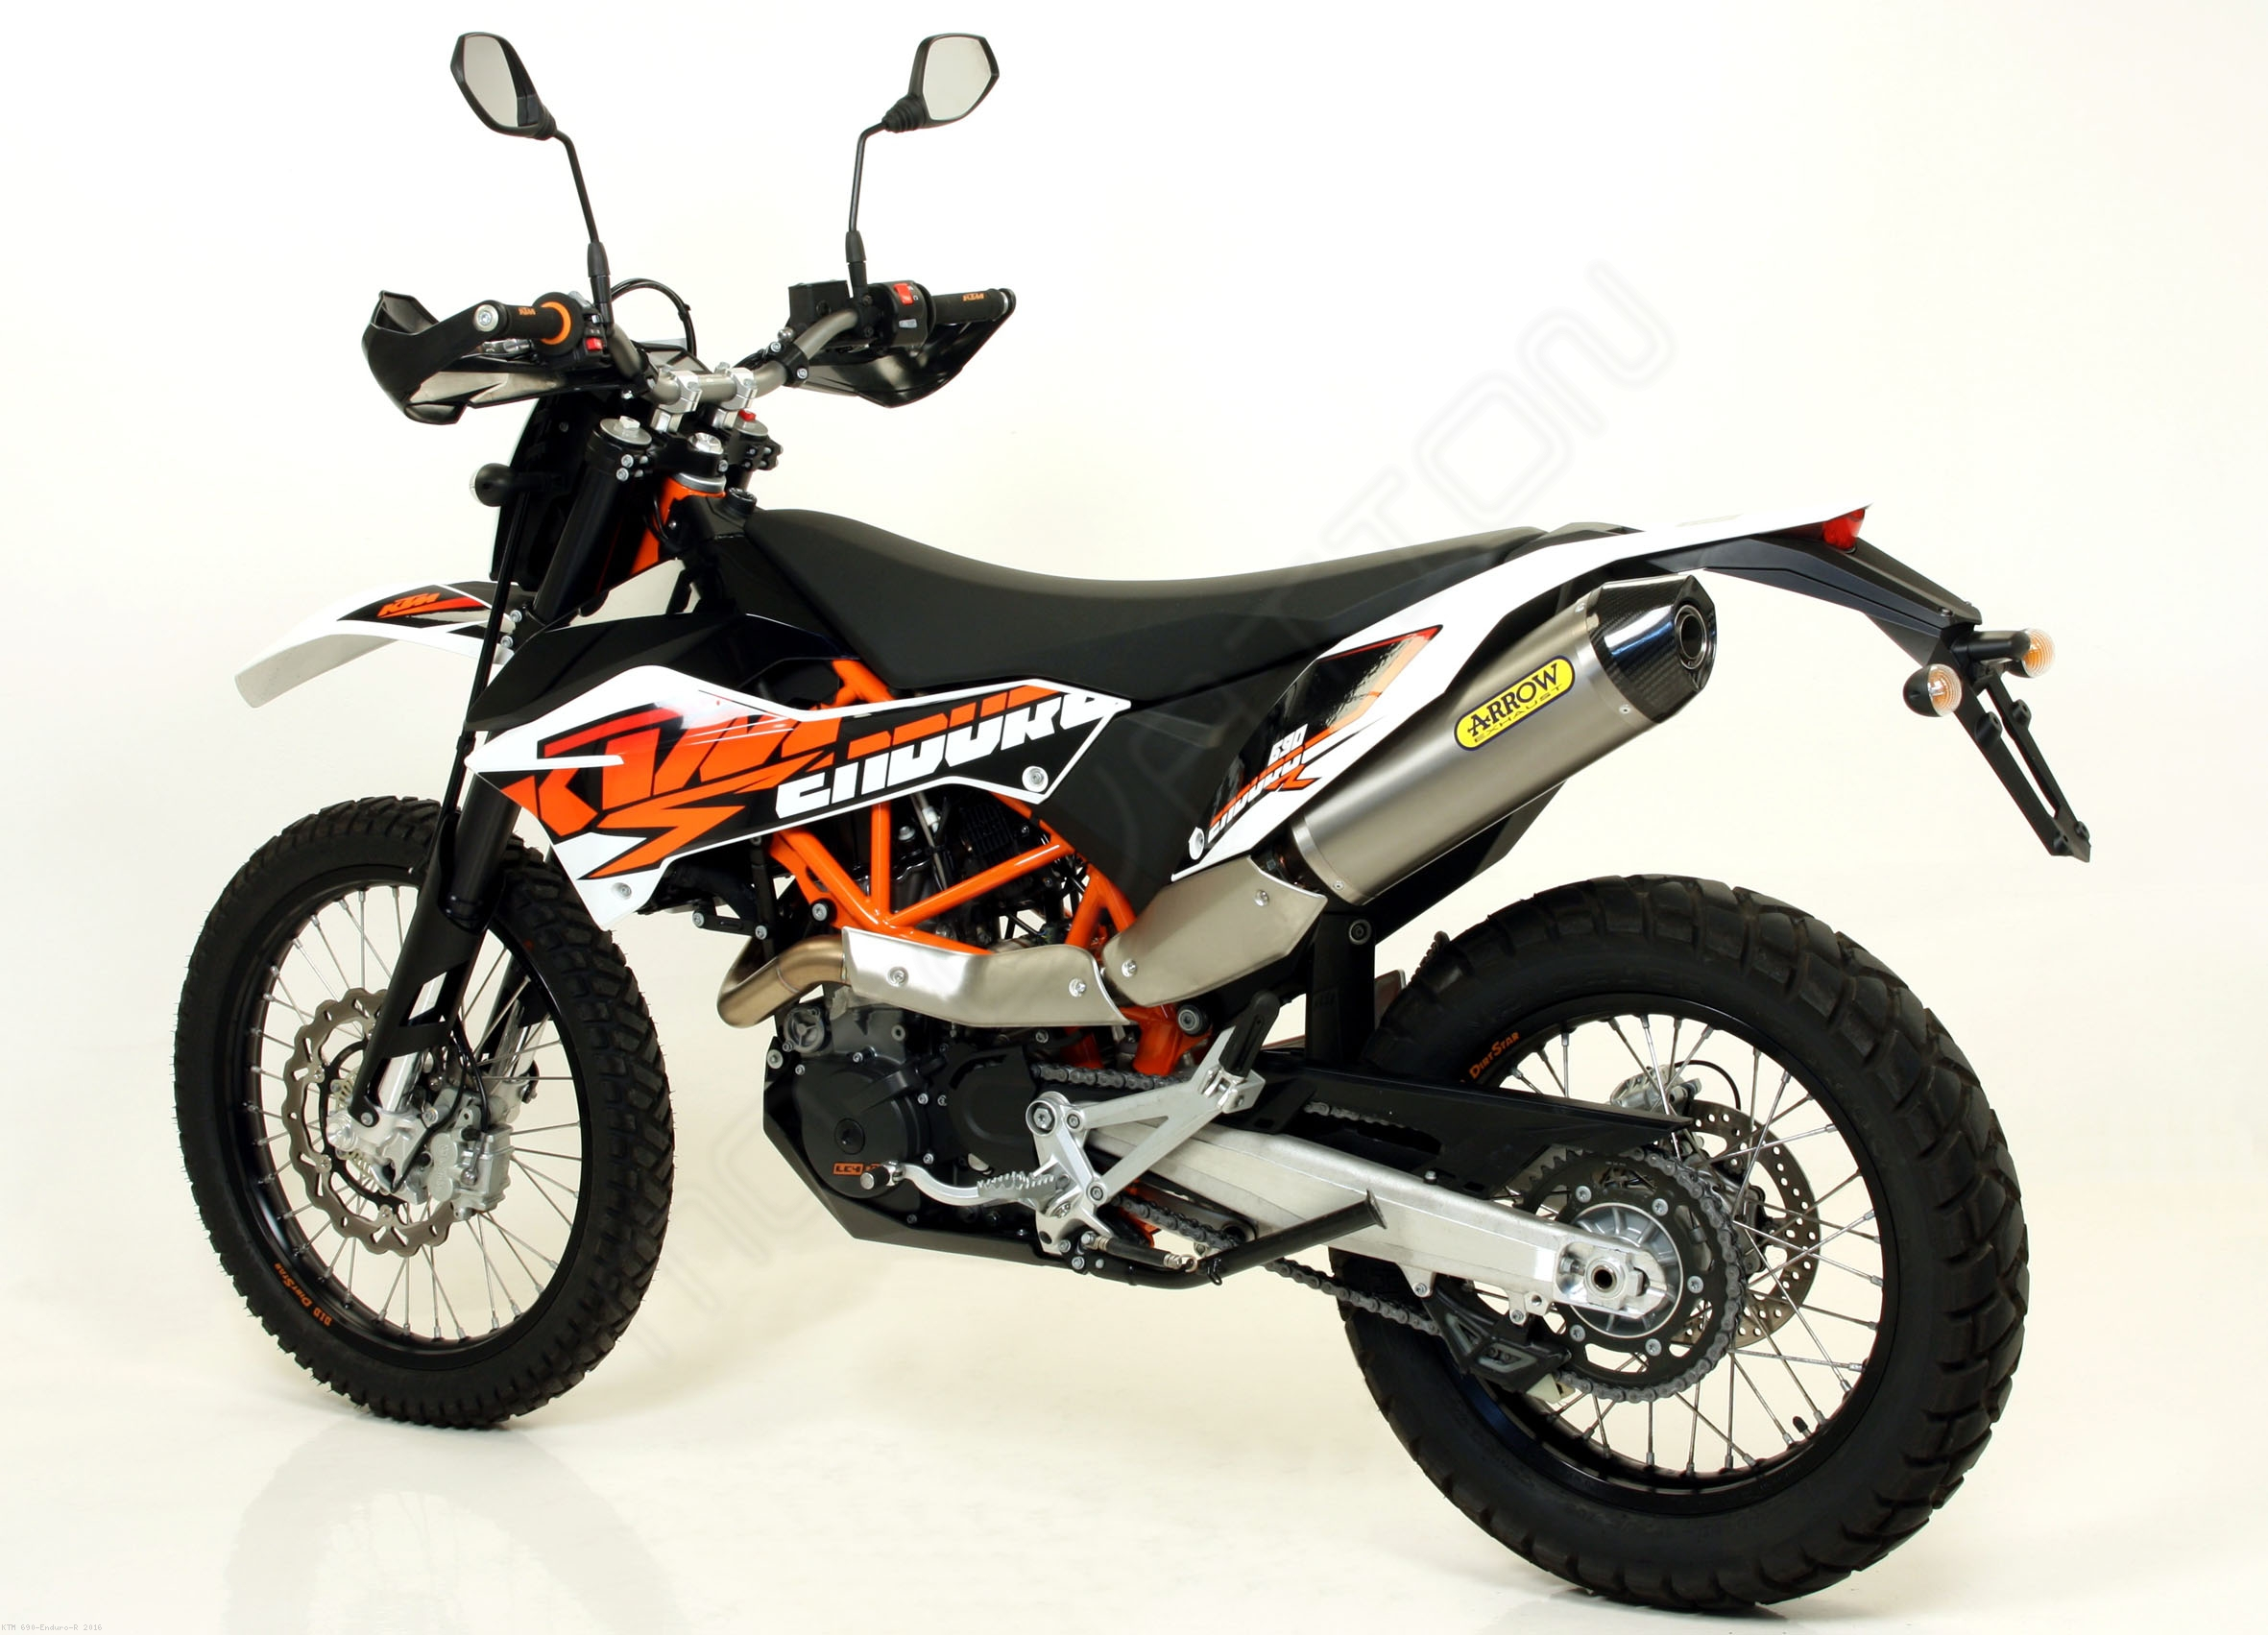 race tech exhaust by arrow ktm 690 enduro r 2016 72618 72119pd. Black Bedroom Furniture Sets. Home Design Ideas